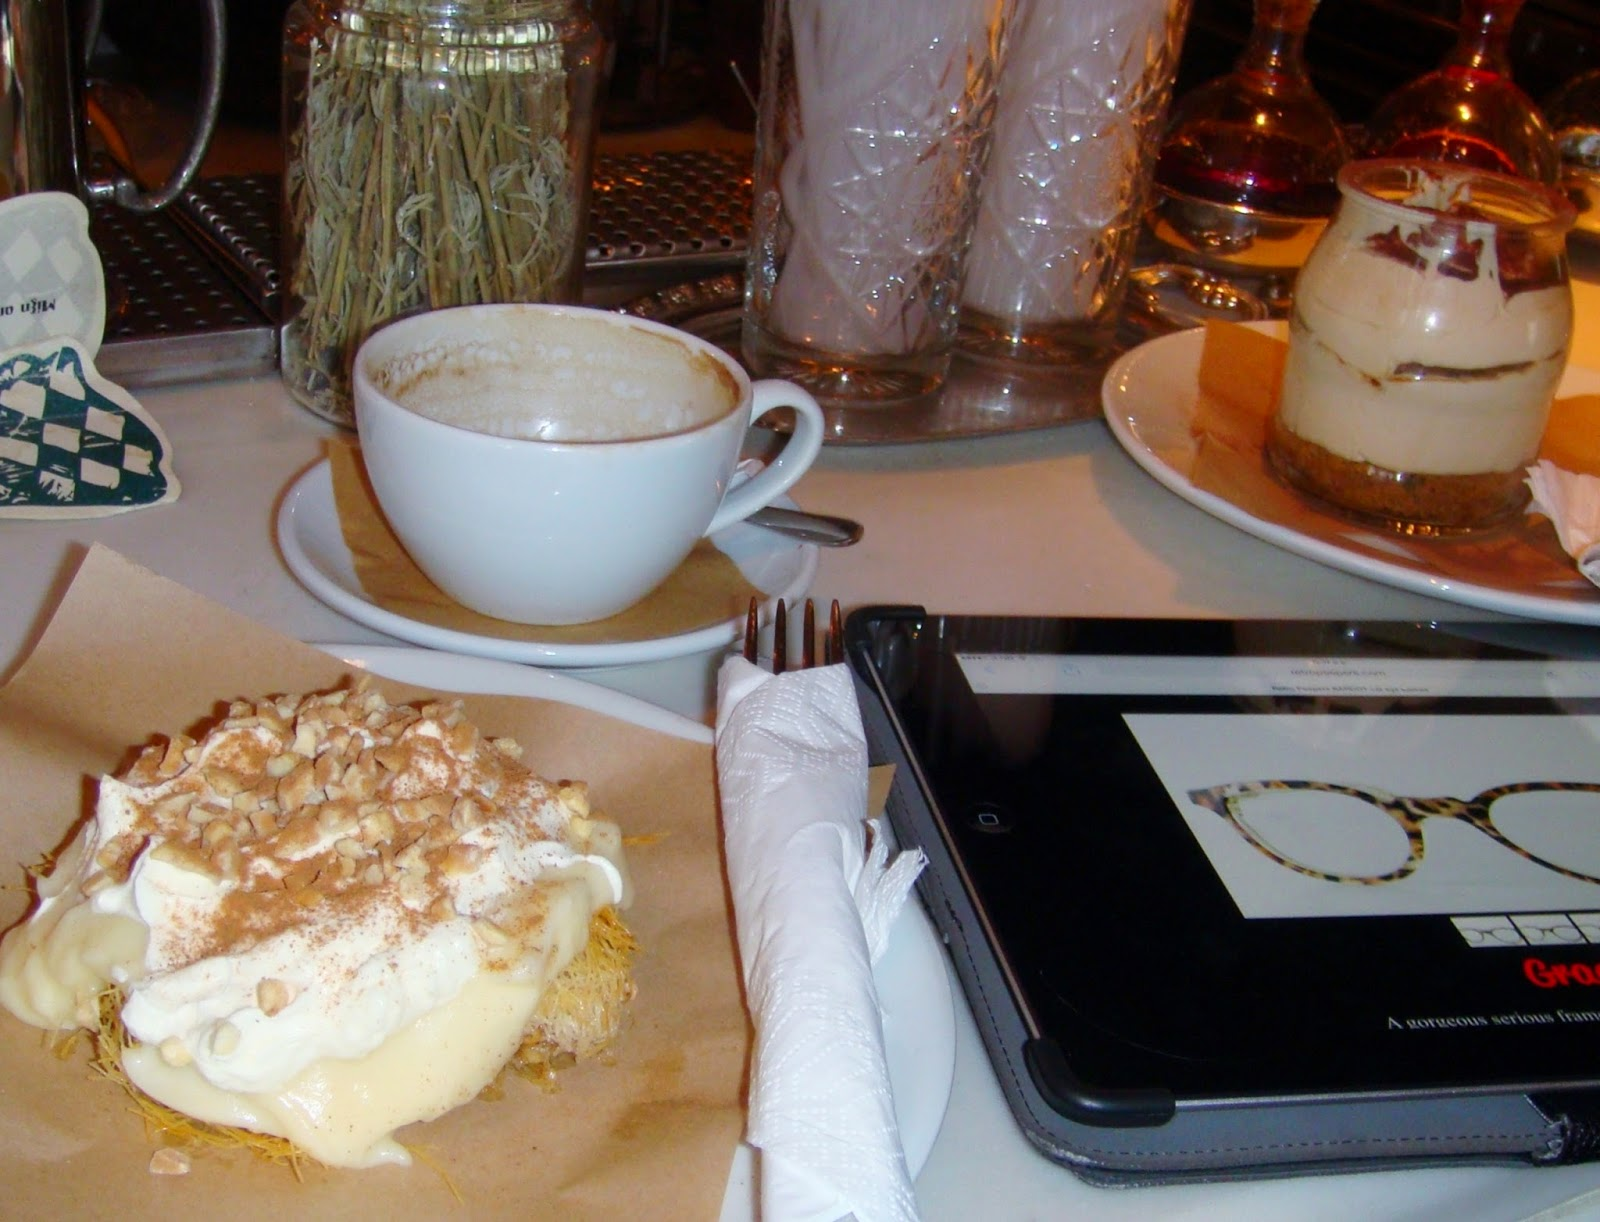 Coffee and cakes in Kalamata